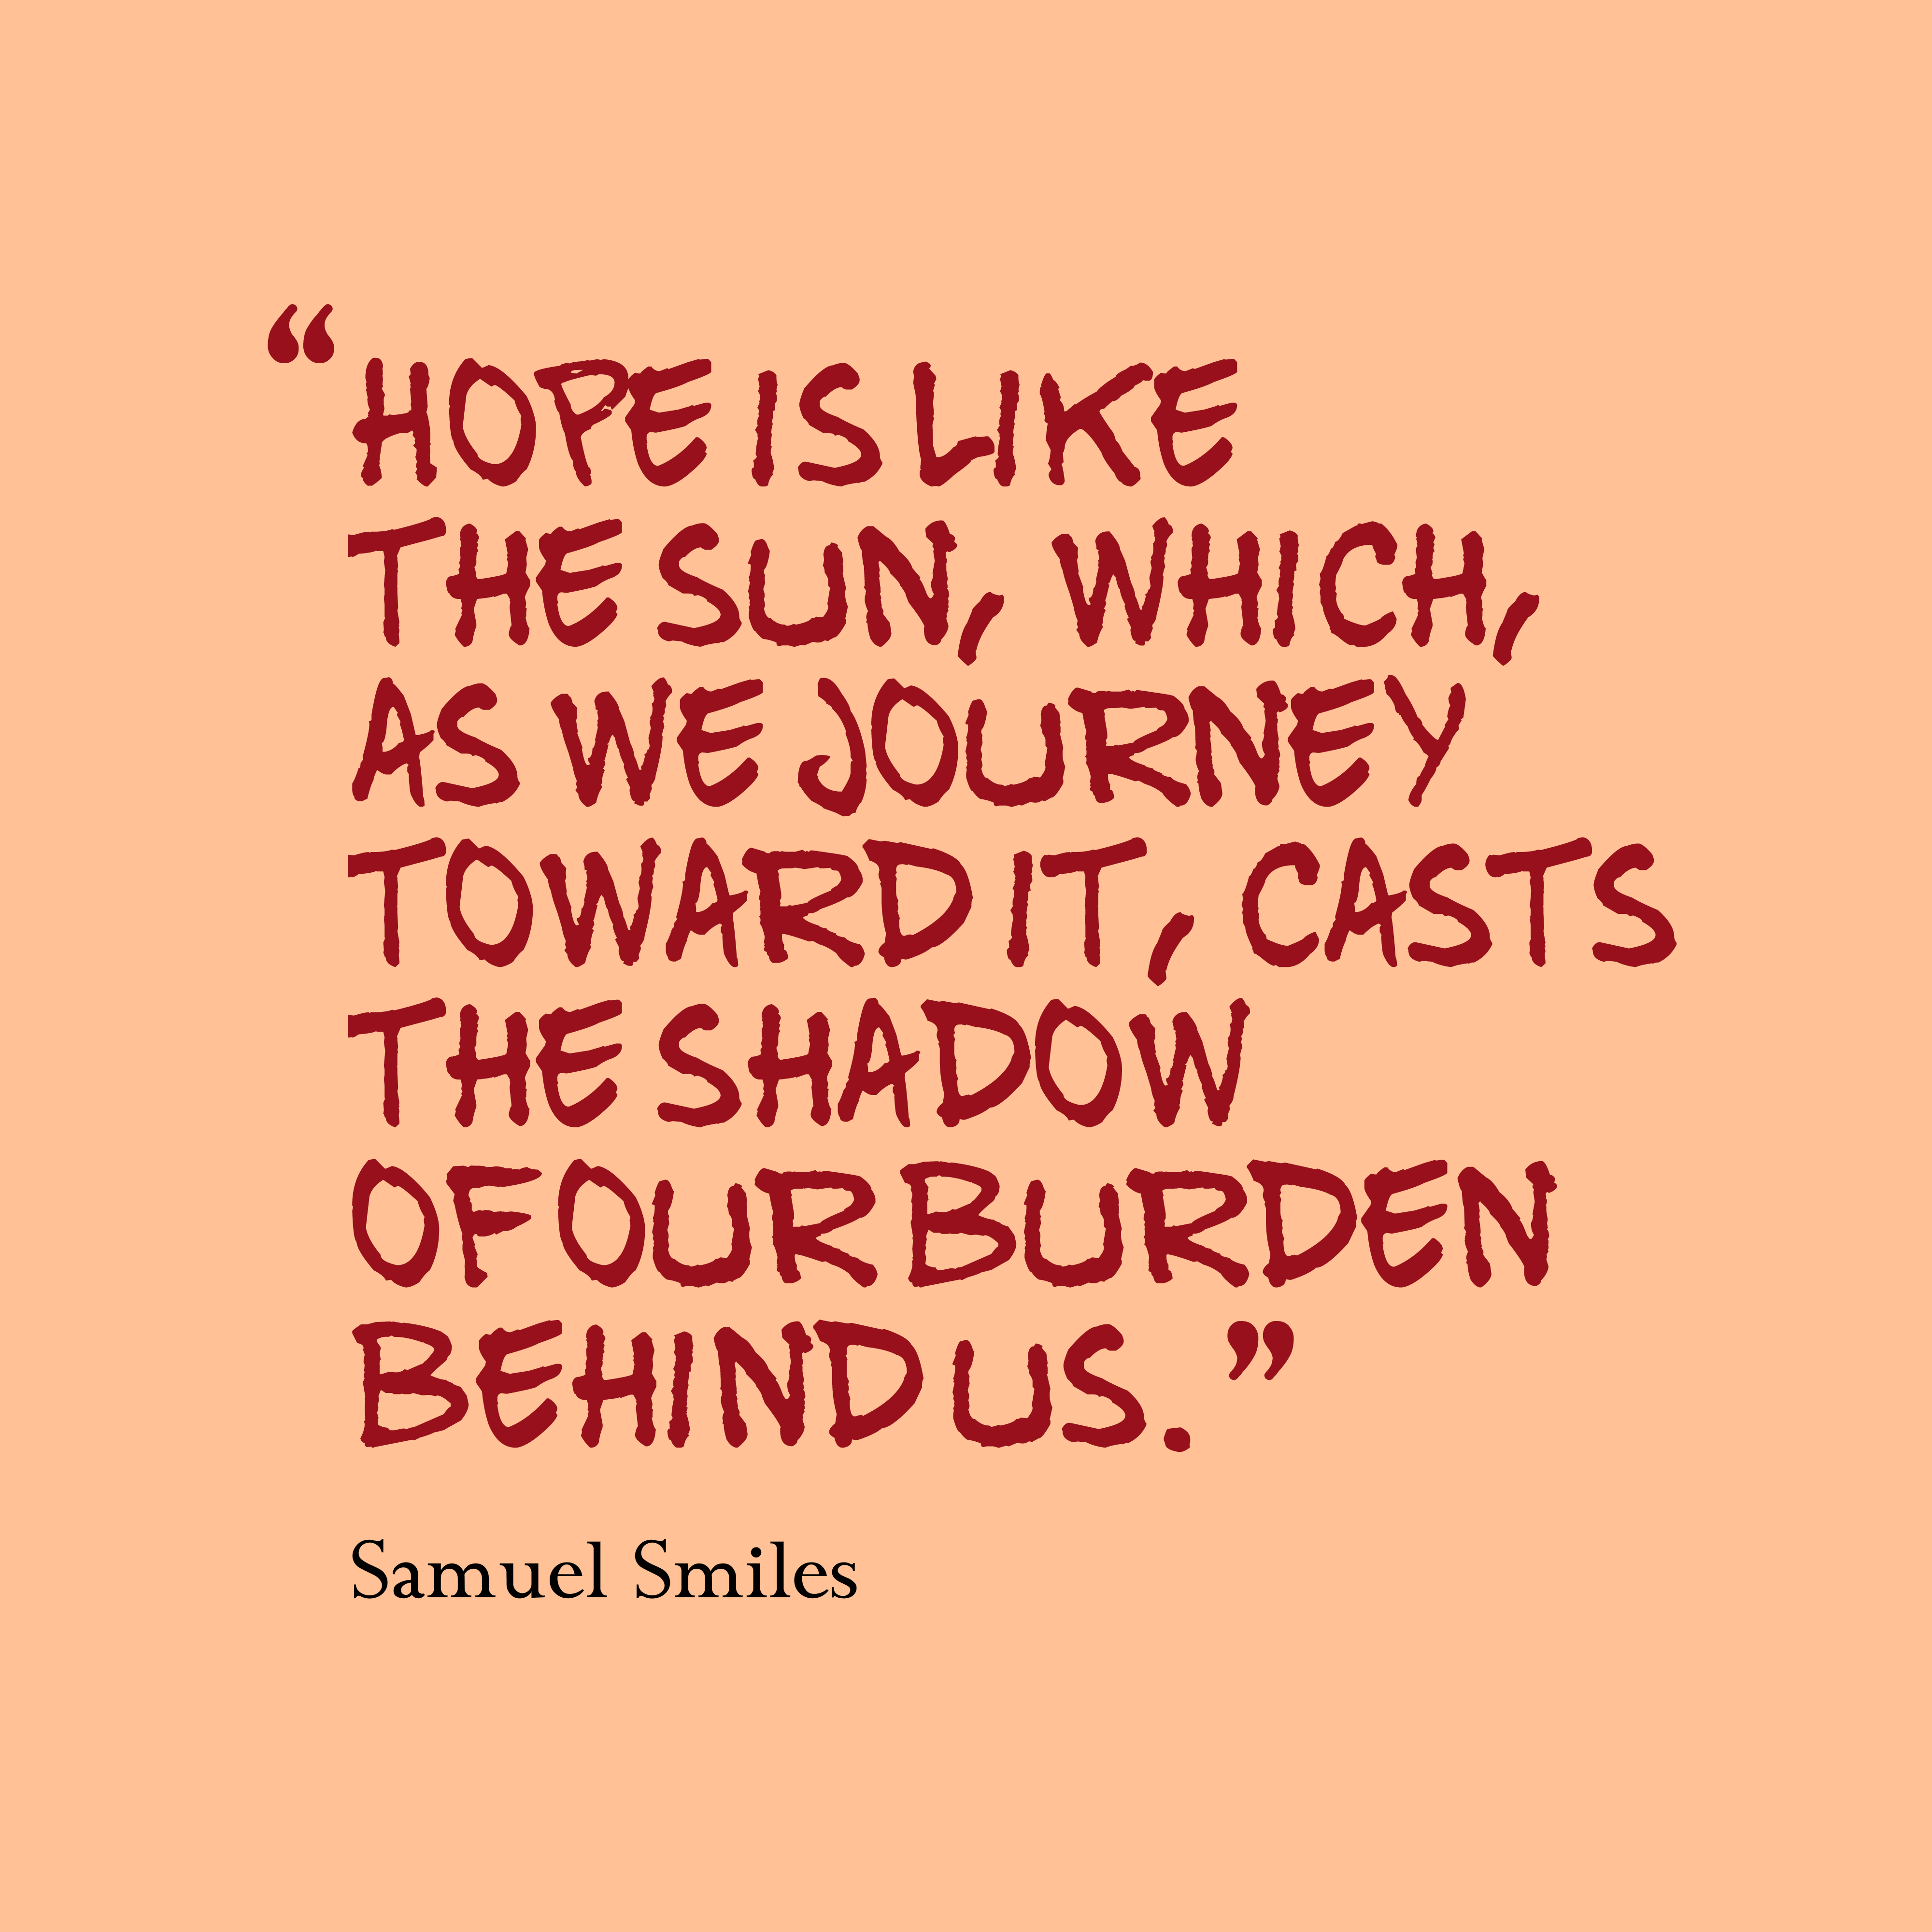 Quotes image of Hope is like the sun, which, as we journey toward it, casts the shadow of our burden behind us.